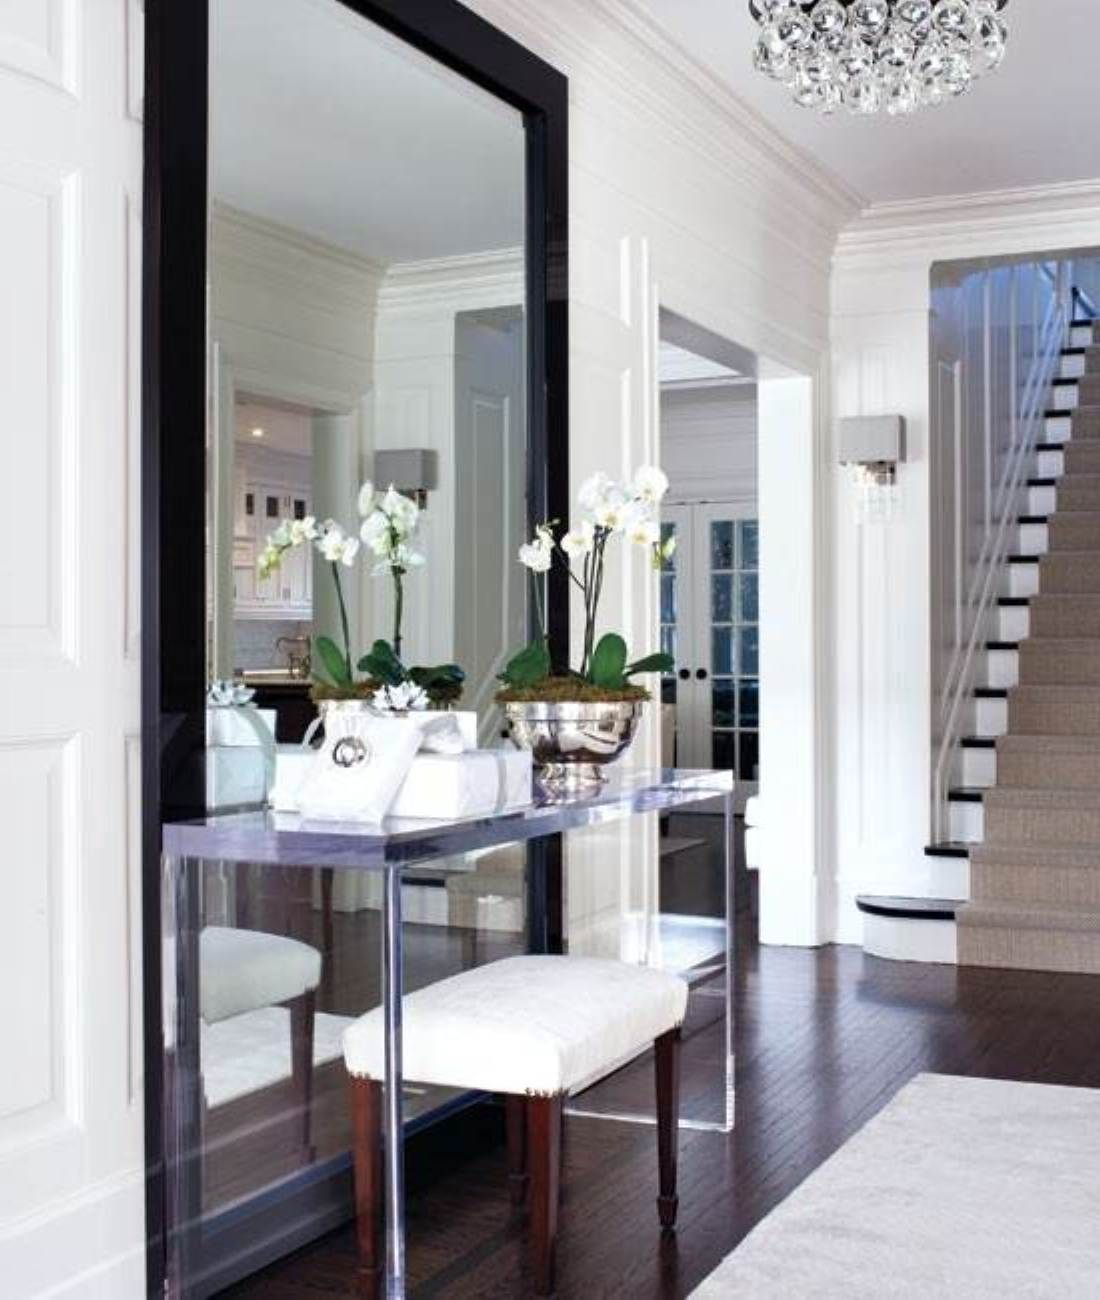 Awesome Black Wood Floor Plus Huge Wall Mirror Design Feat Captivating  Console Table Decor With Potted